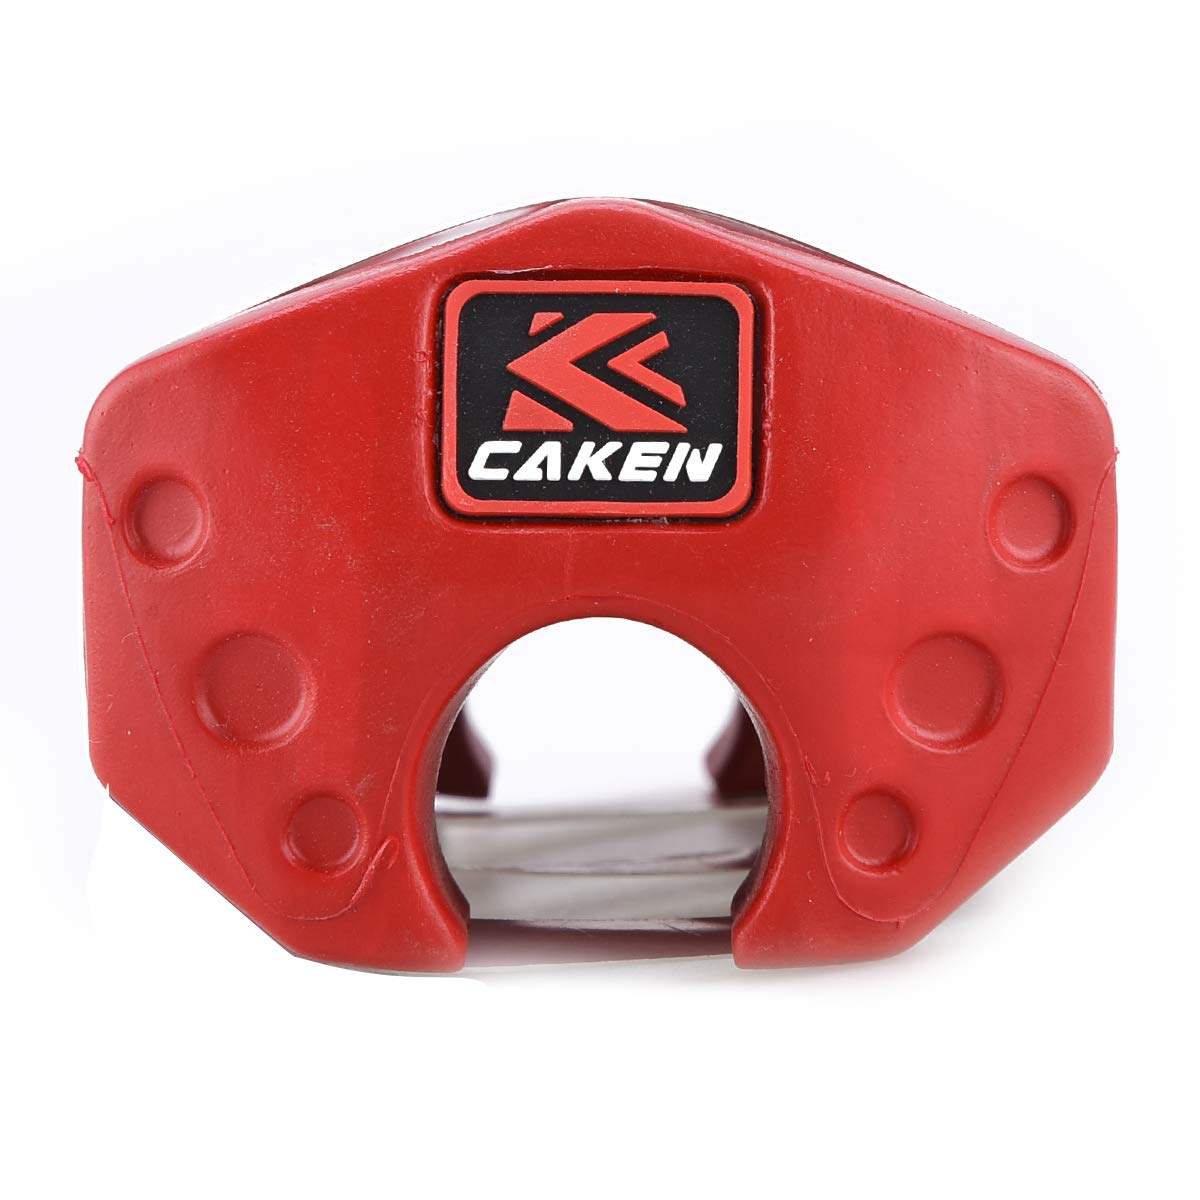 Pro Caken 28/ mm 1/  / 1//20,3/ cm manubrio fat bar Pad Pit Dirt bike motocross Crf Rmz YZF Red